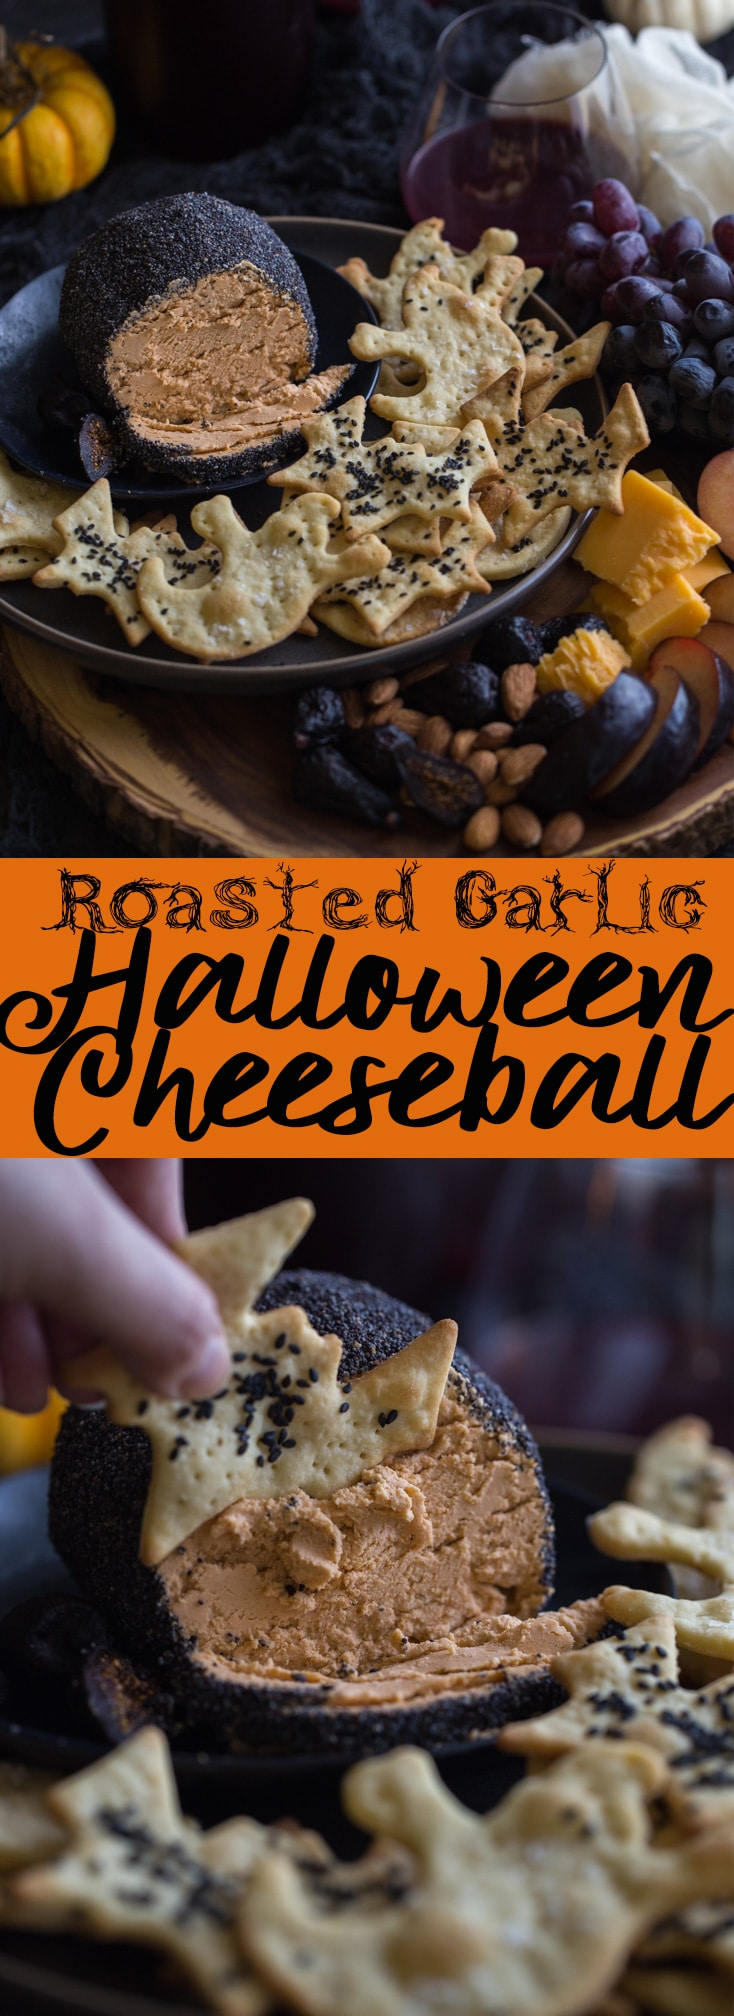 This spooky Roasted Garlic Cheese Ball is perfect for your Halloween party! Cheese Ball Recipe | Halloween Party foods | Grown Up Halloween | Adult Halloween | Classy Halloween